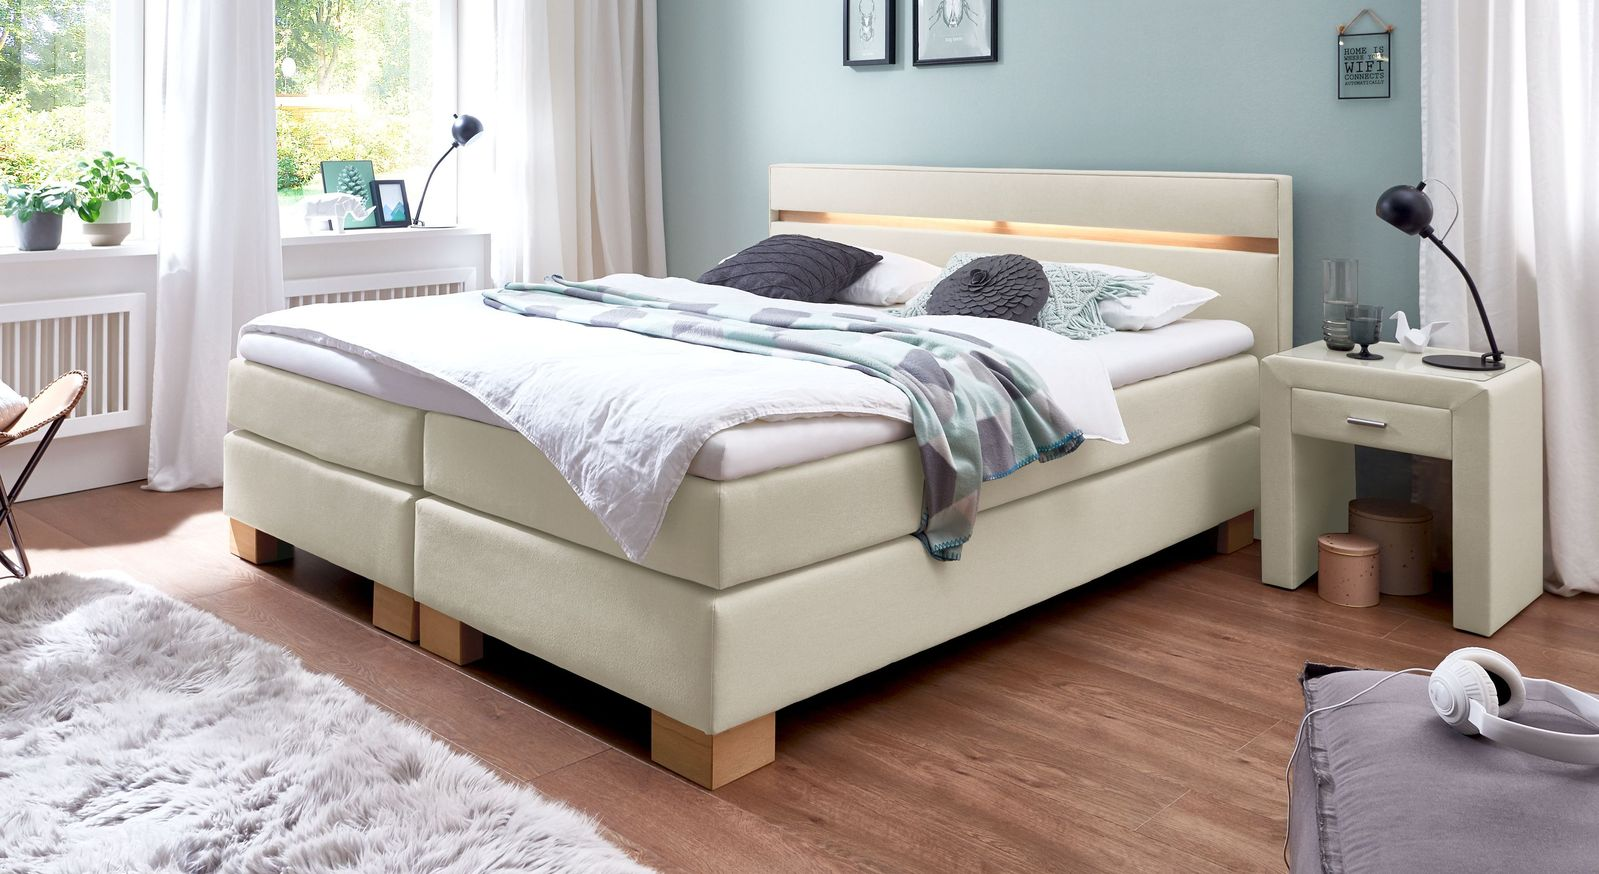 53 cm hohes Boxspringbett Vincenzo aus Webstoff in Creme